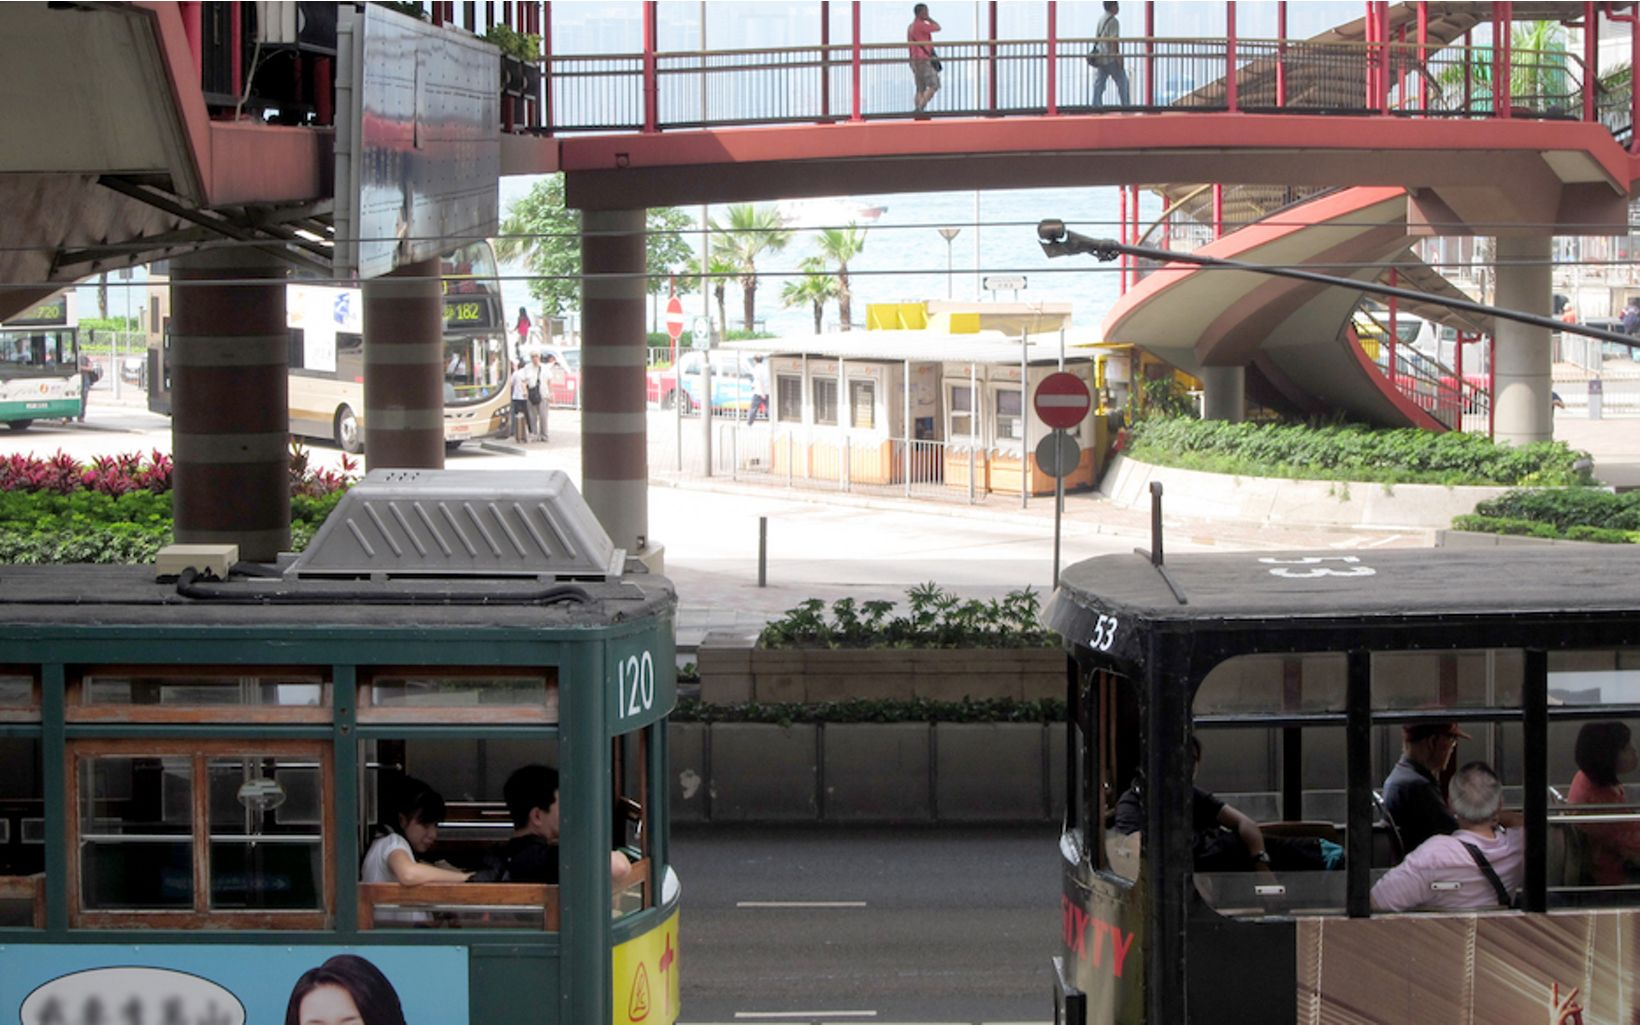 or other forms of public transportation in Hong Kong to reduce your carbon footprint.